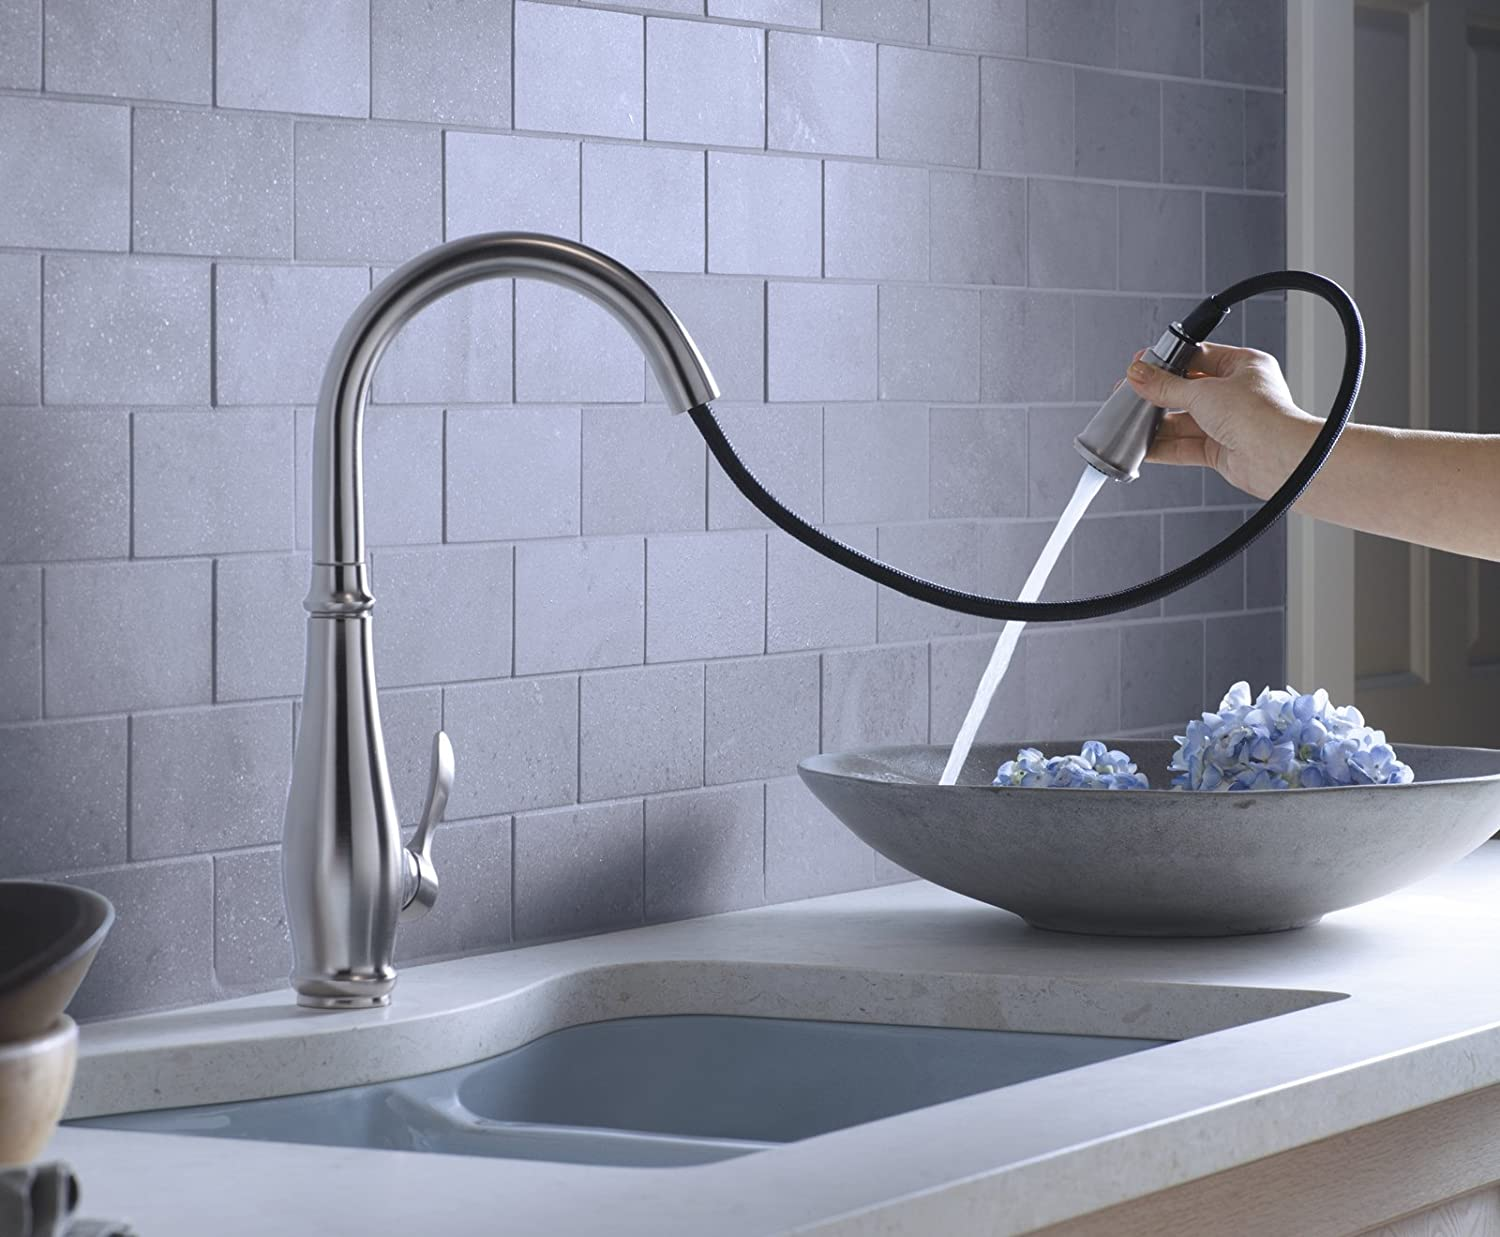 Kohler K 780 VS Cruette Pull Down Kitchen Faucet, Vibrant Stainless Steel    Touch On Kitchen Sink Faucets   Amazon.com